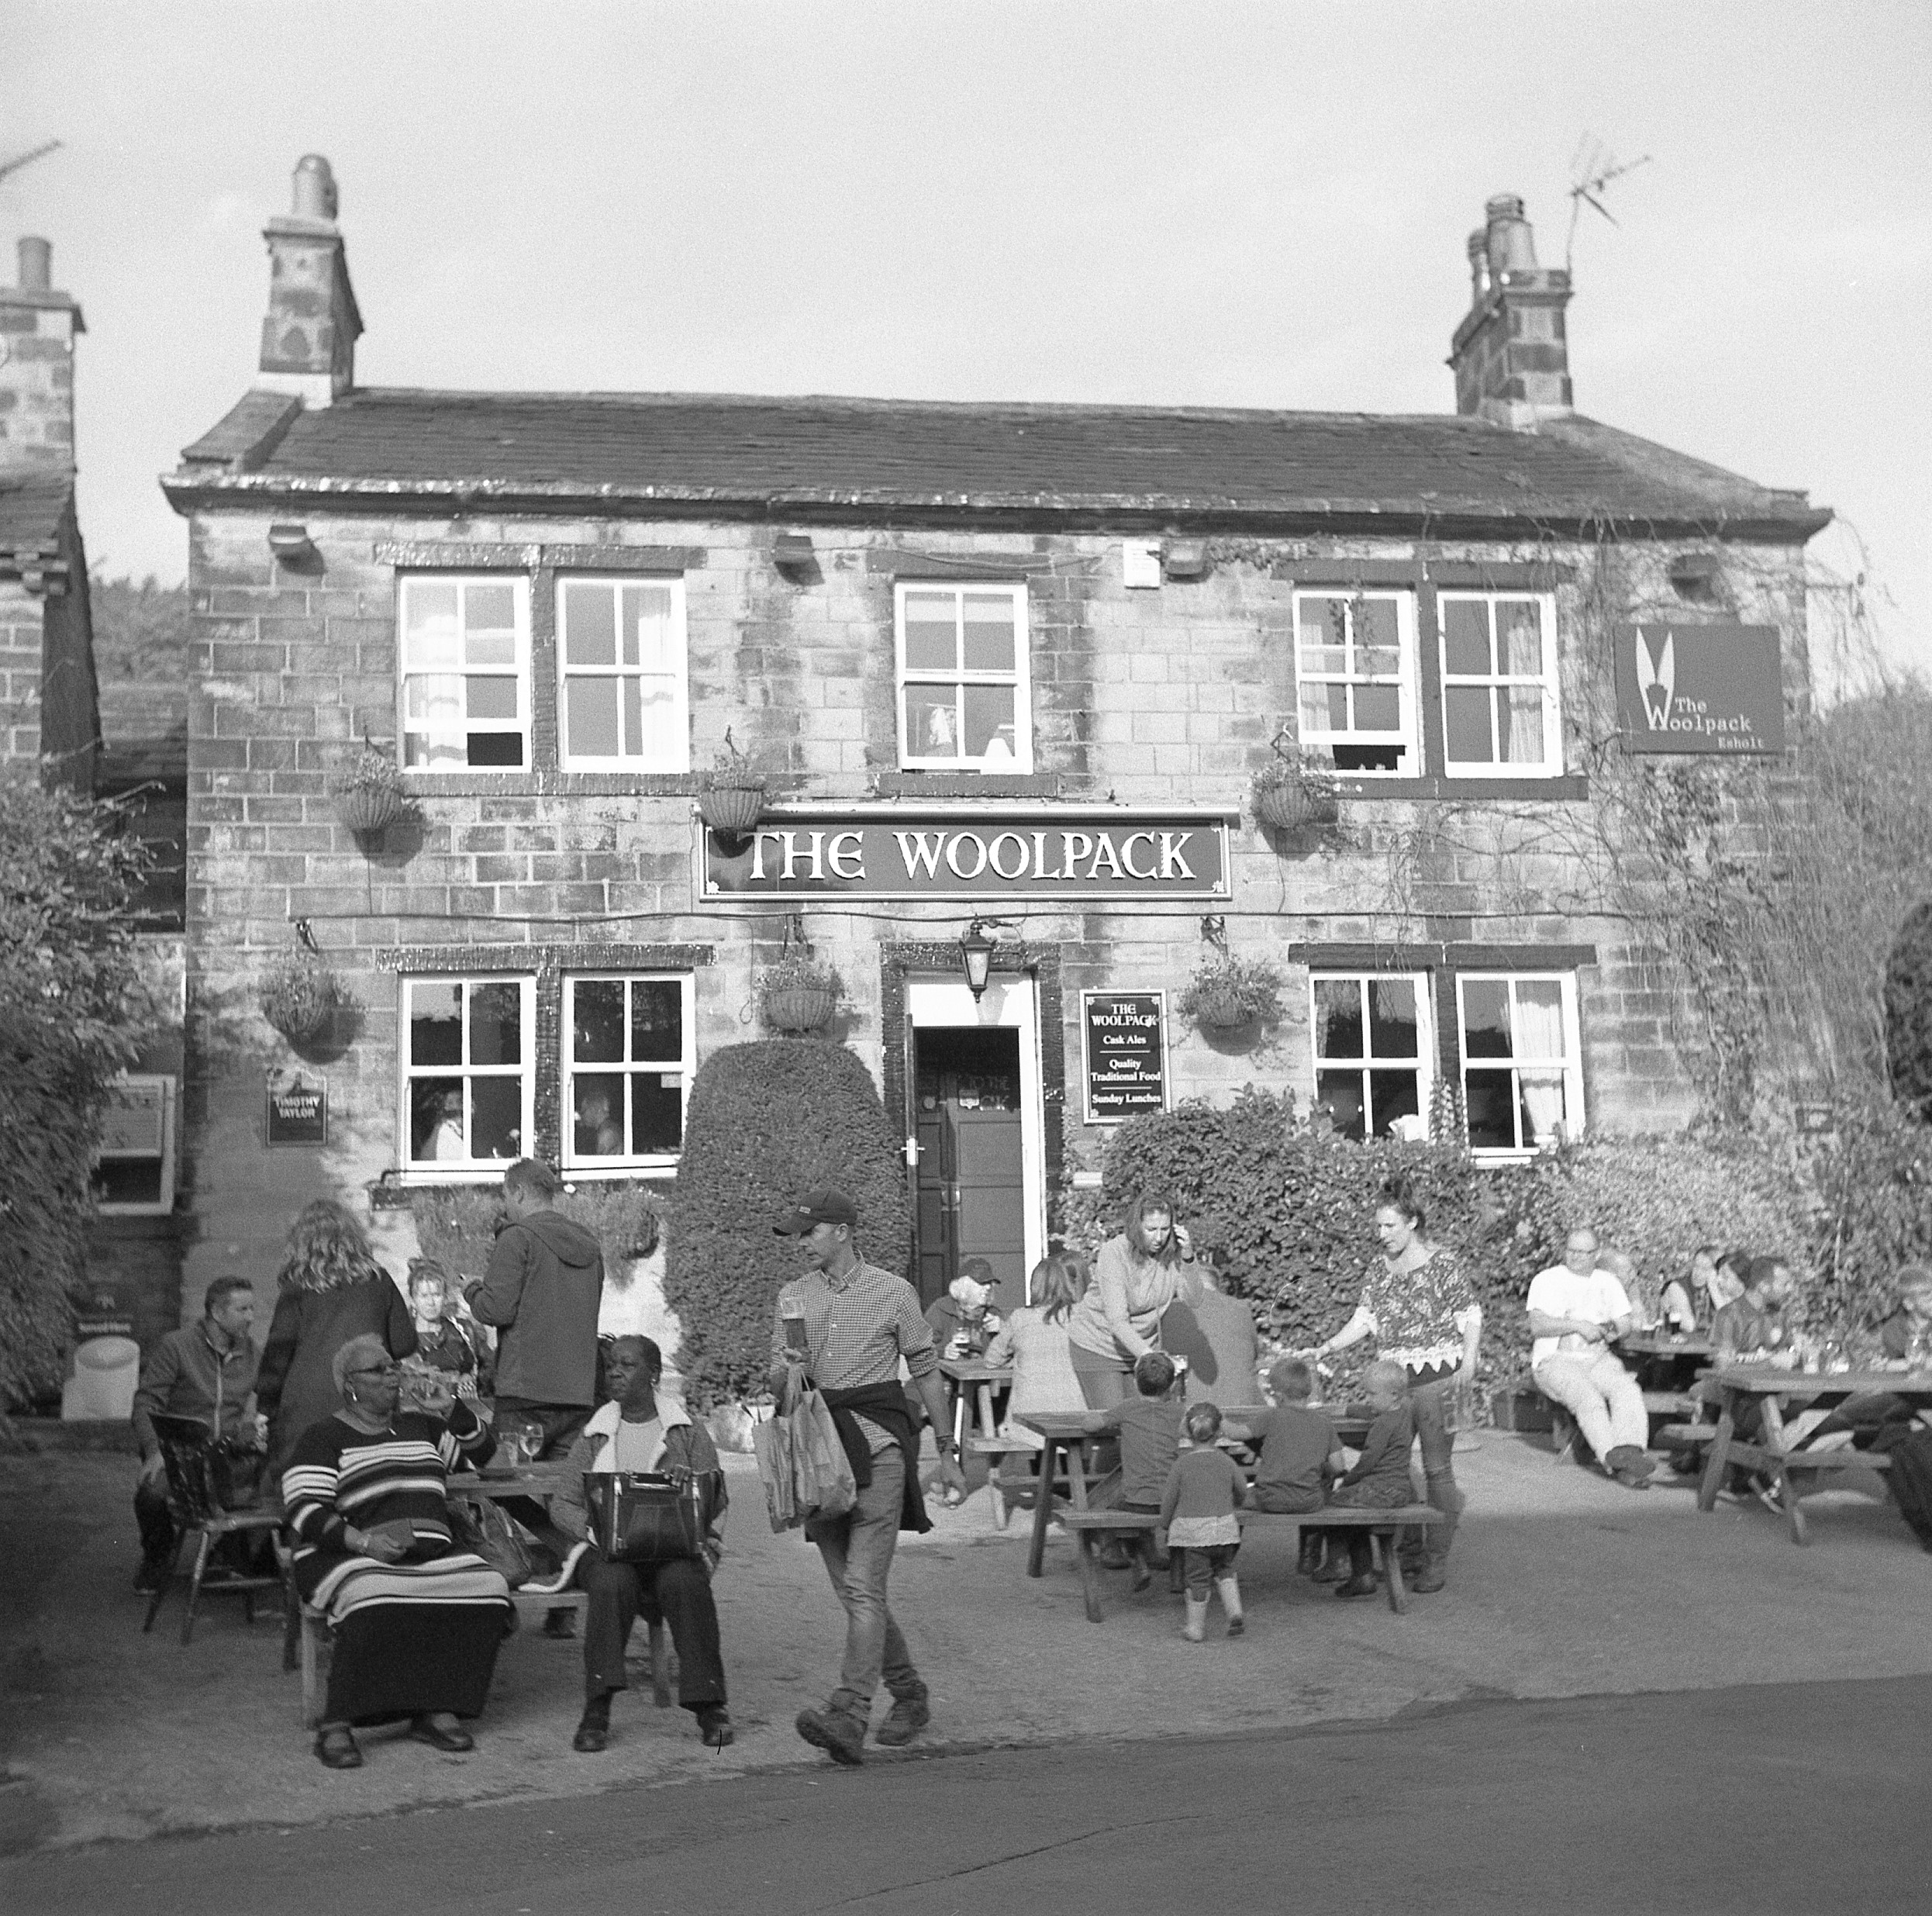 yashica 635 tlr ilford HP5 yorkshire pub the woolpack emmerdale farm television